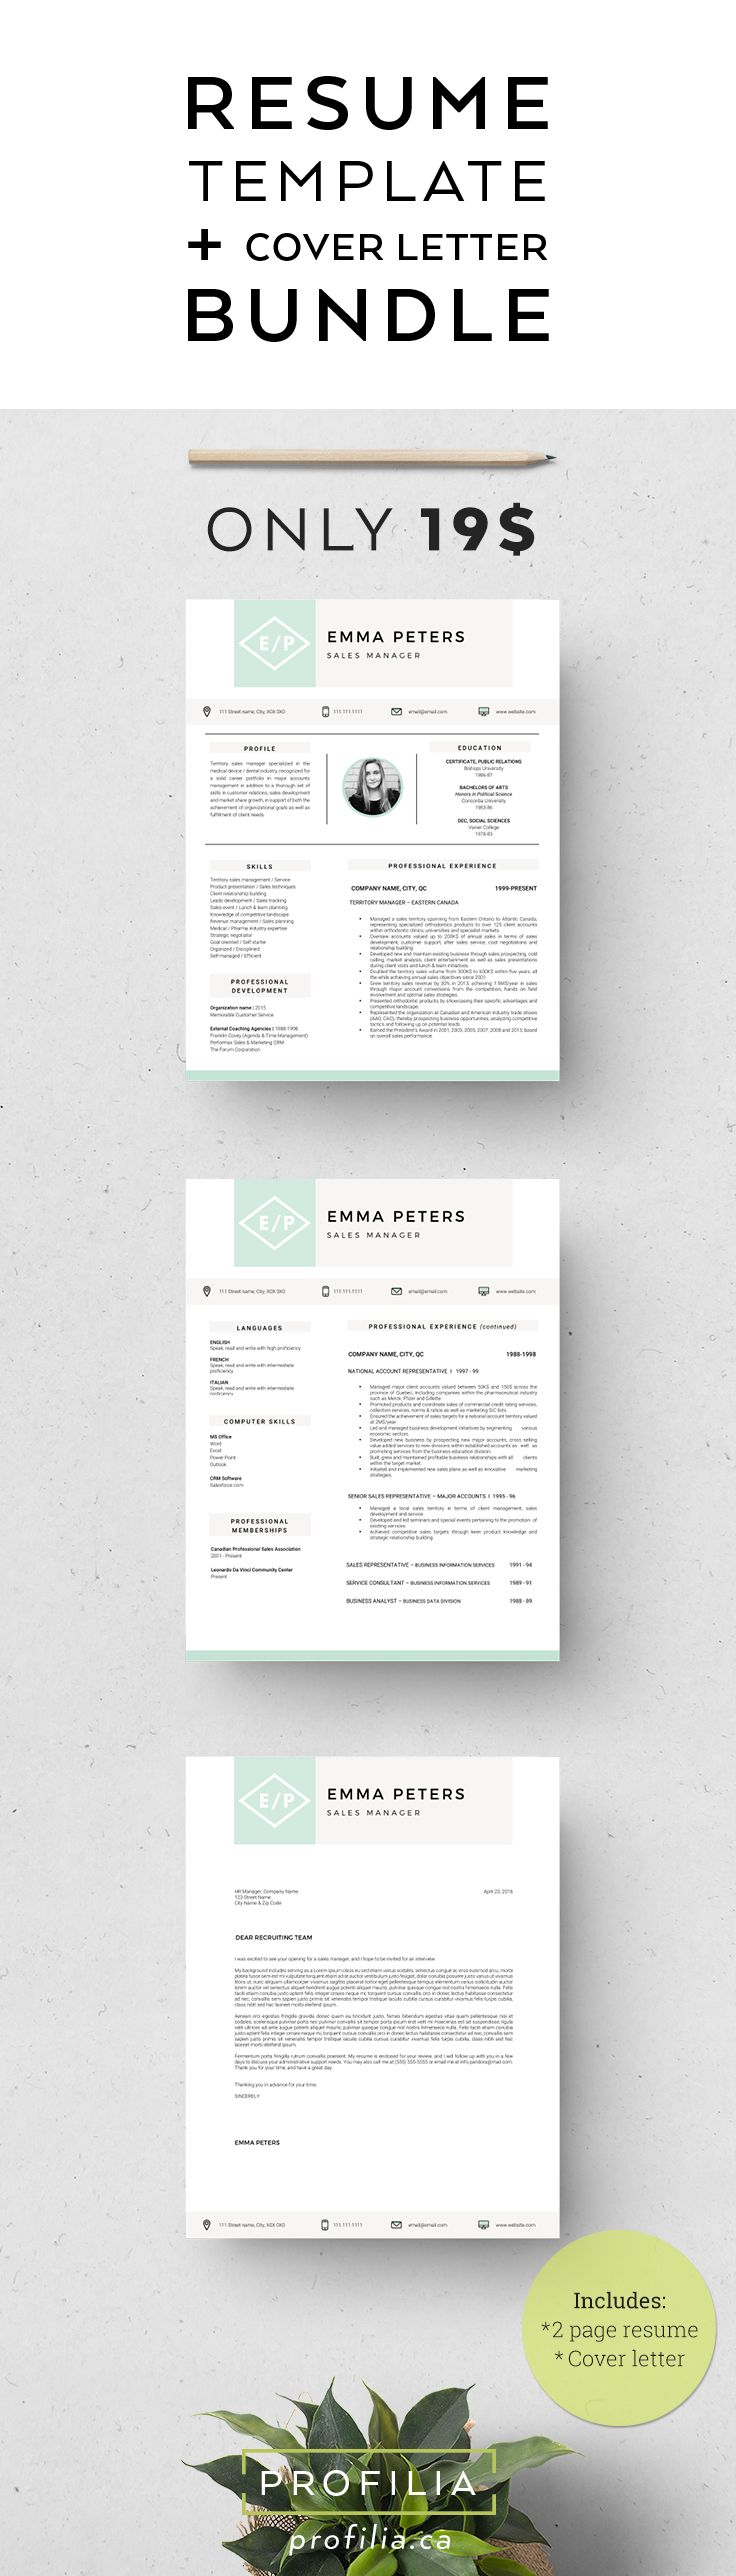 Modern Resume U0026 Cover Letter Template. 3 Page Bundle With Fonts ...  Resume And Cover Letter Template